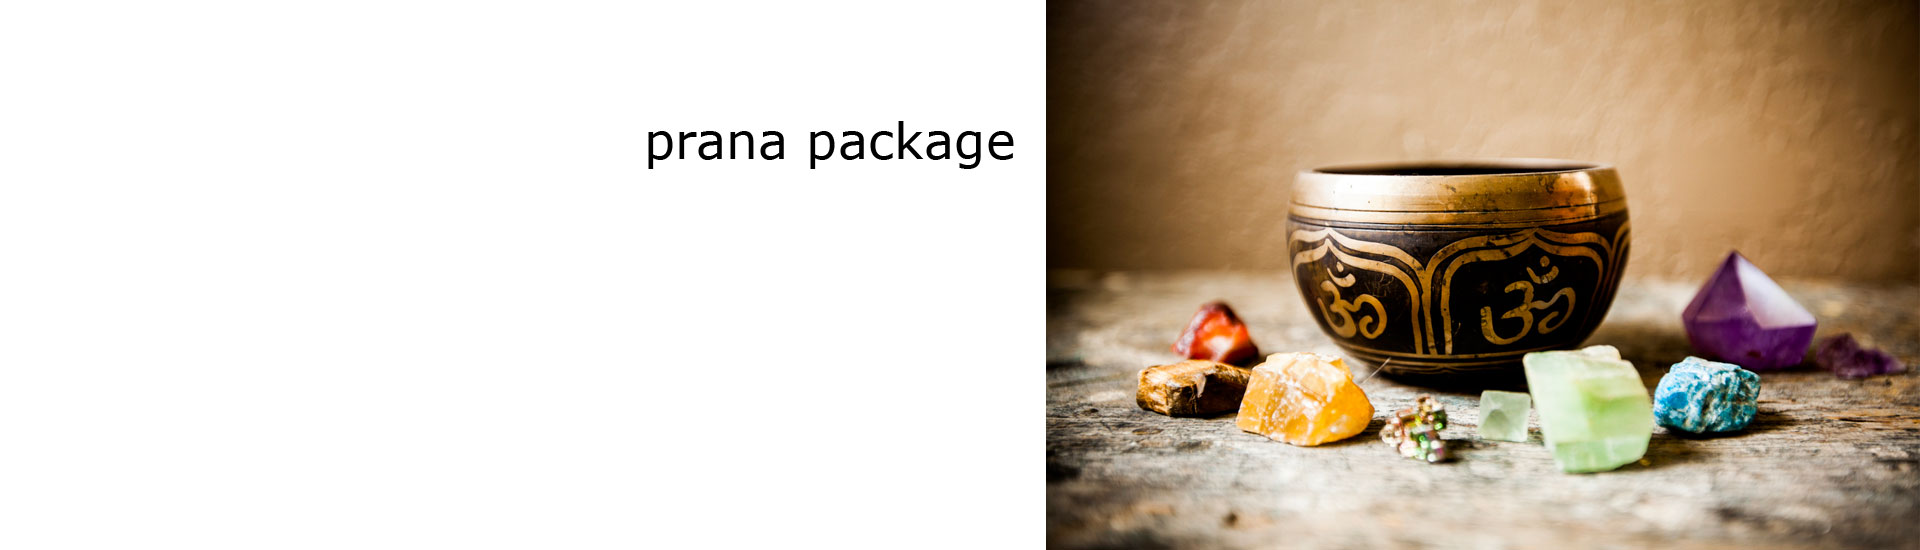 prana package